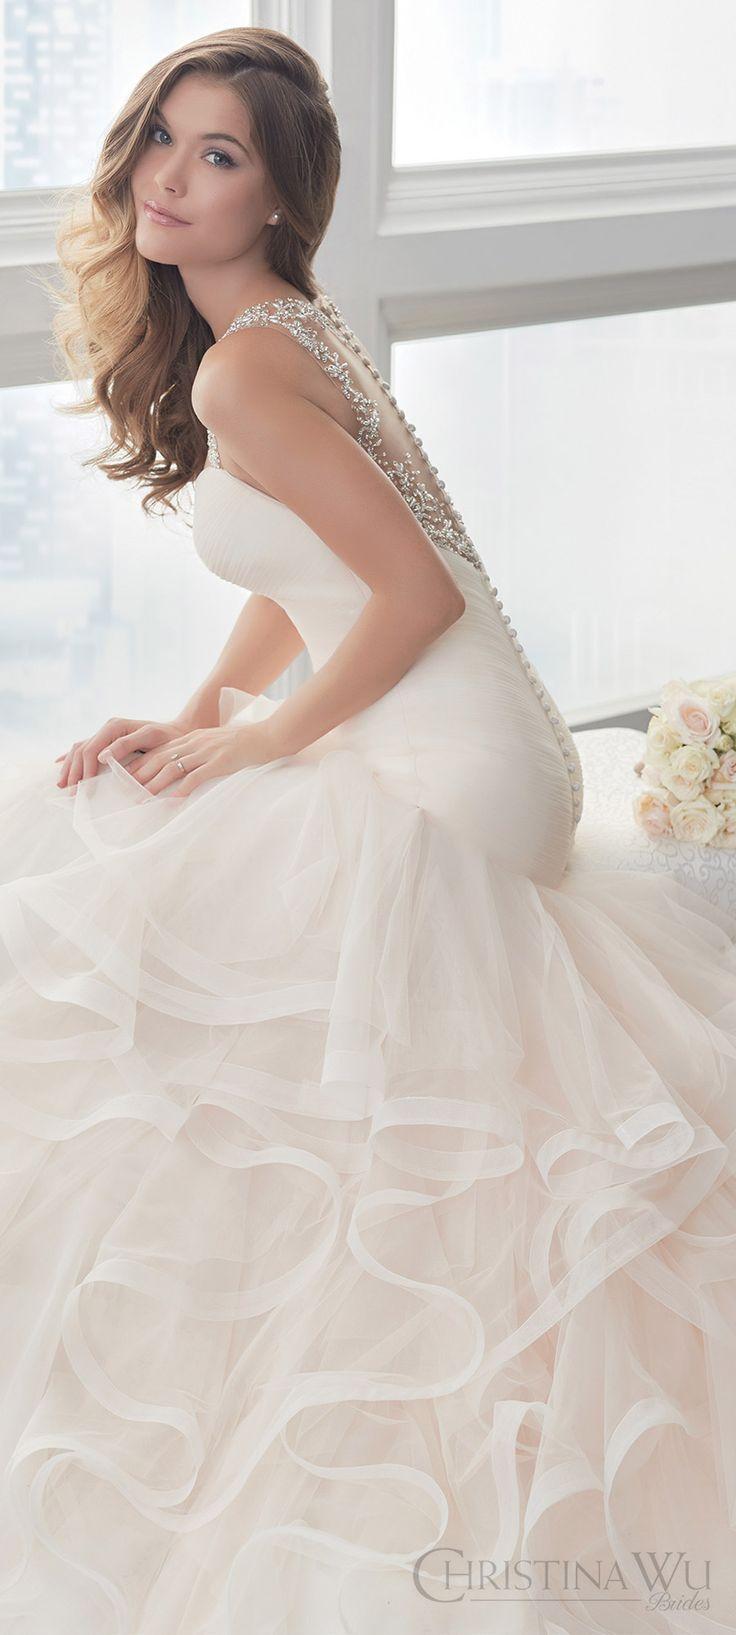 Wedding dresses with ruffles on skirt  christina wu brides spring  bridal sleeveless beaded straps